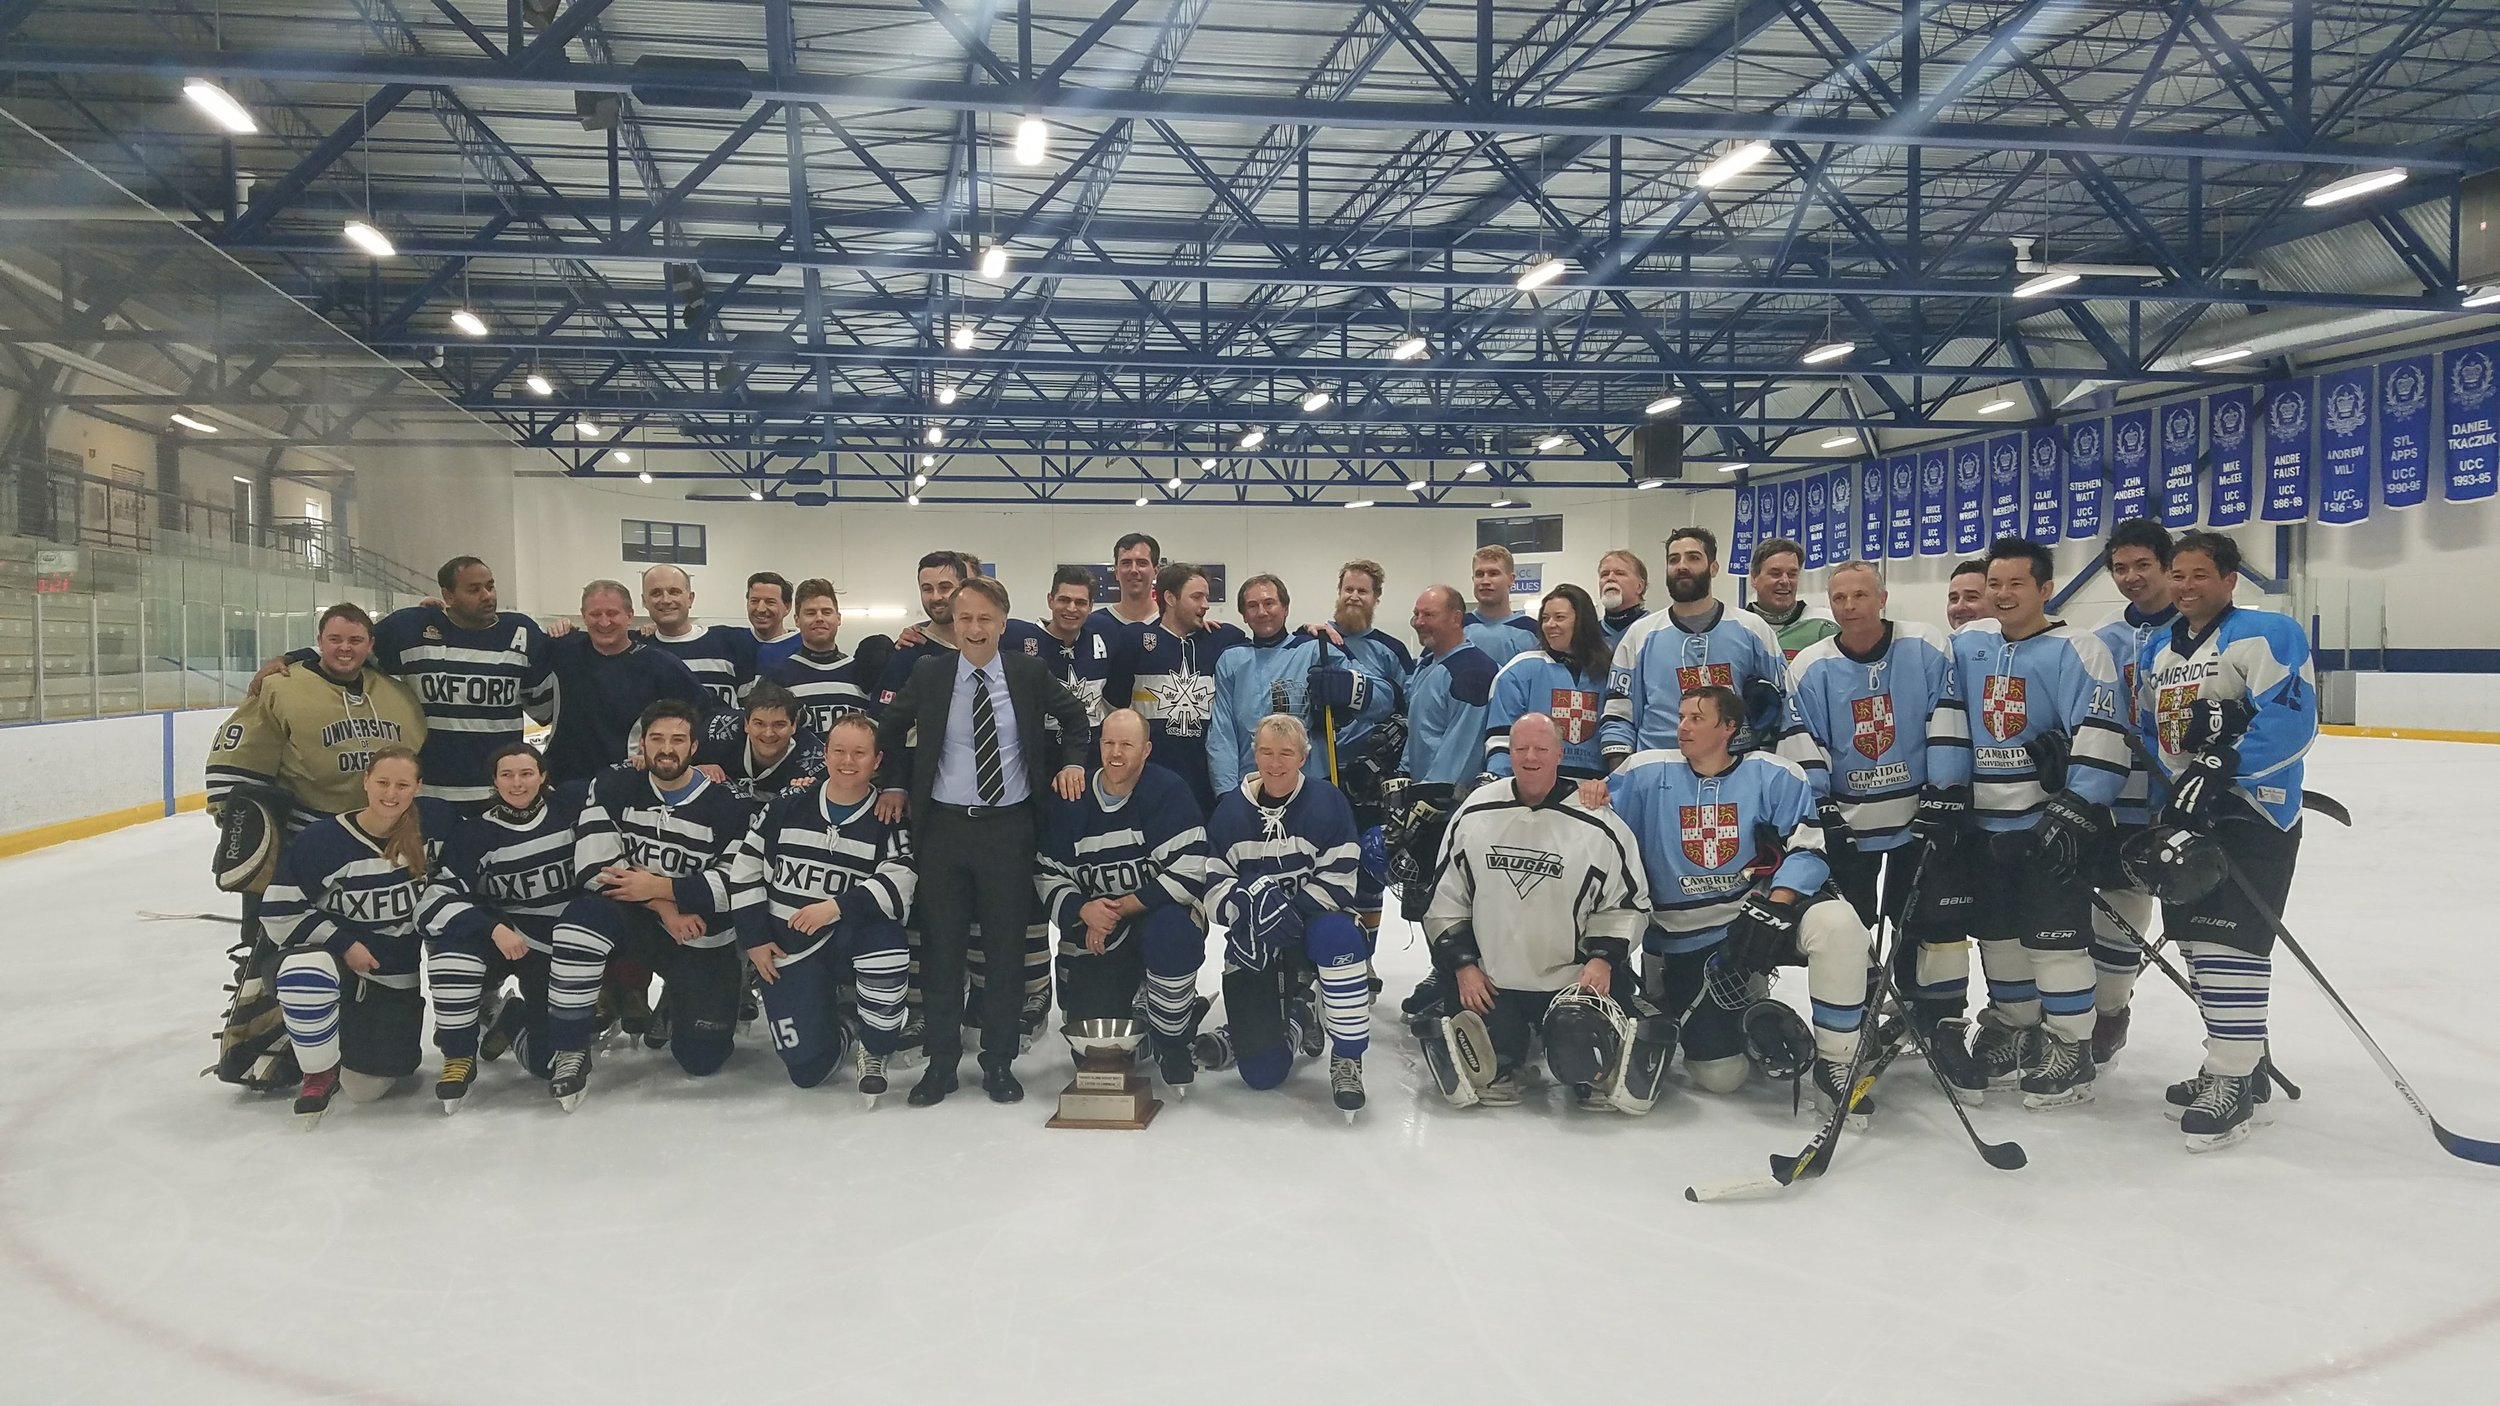 Oxford and Cambridge alumni teams after the 9th Annual Alumni Game in Toronto.